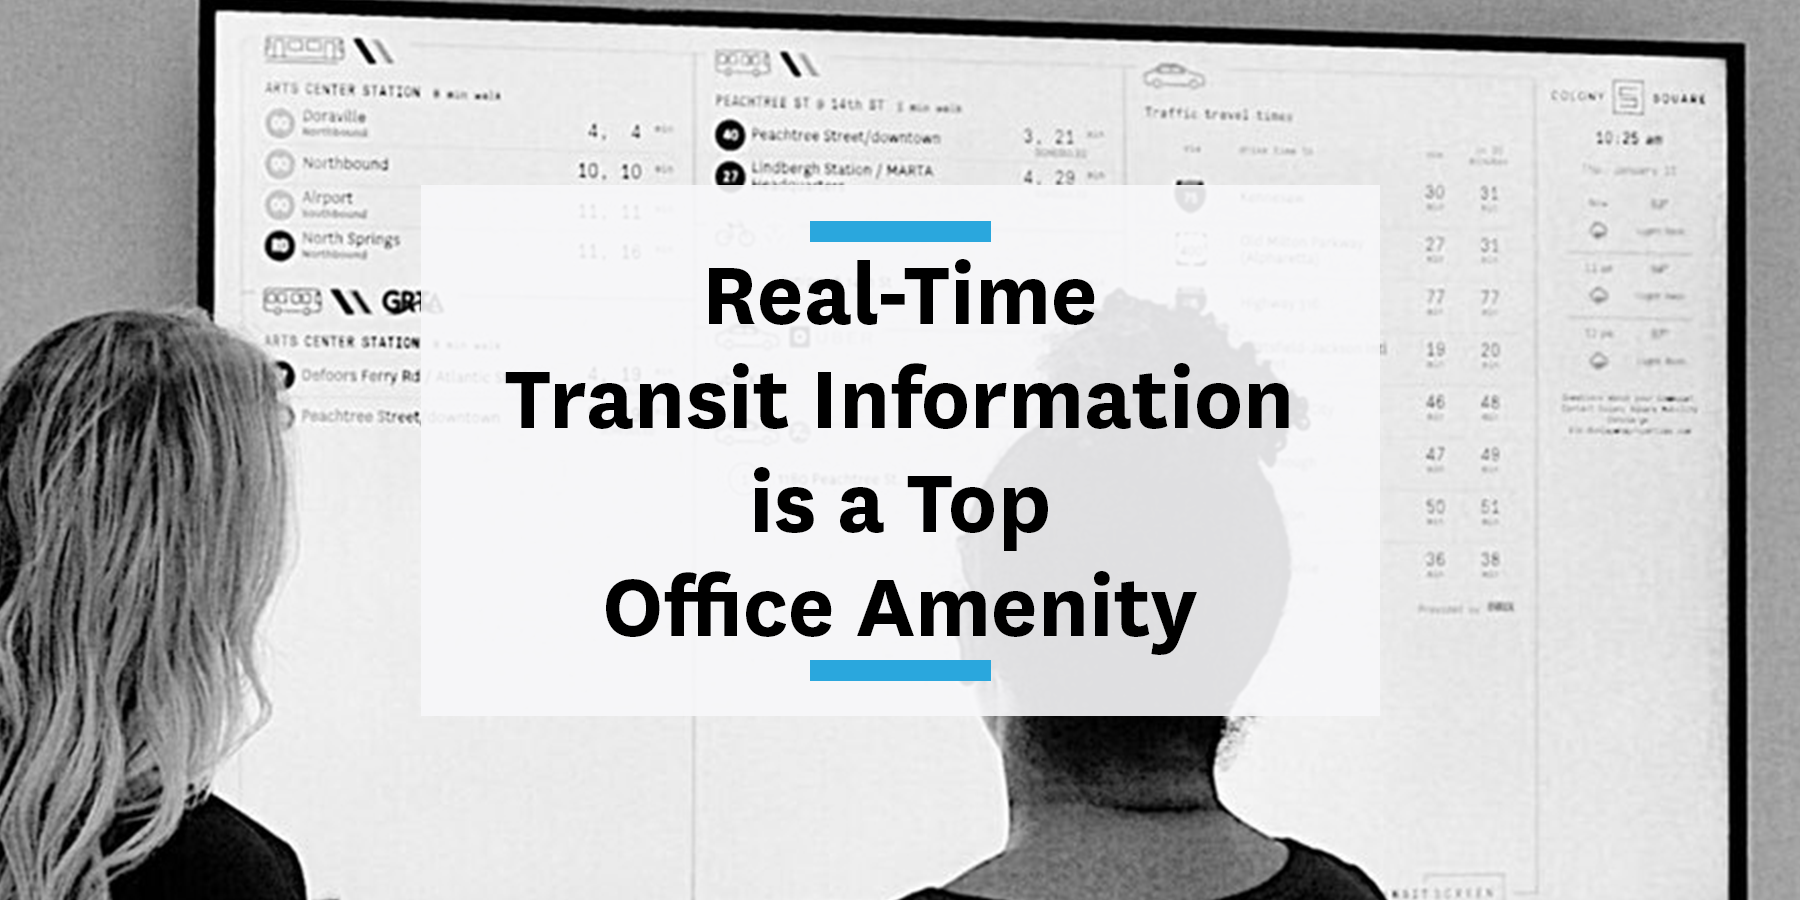 Real-time transit information is top office amenity for your commute management strategy